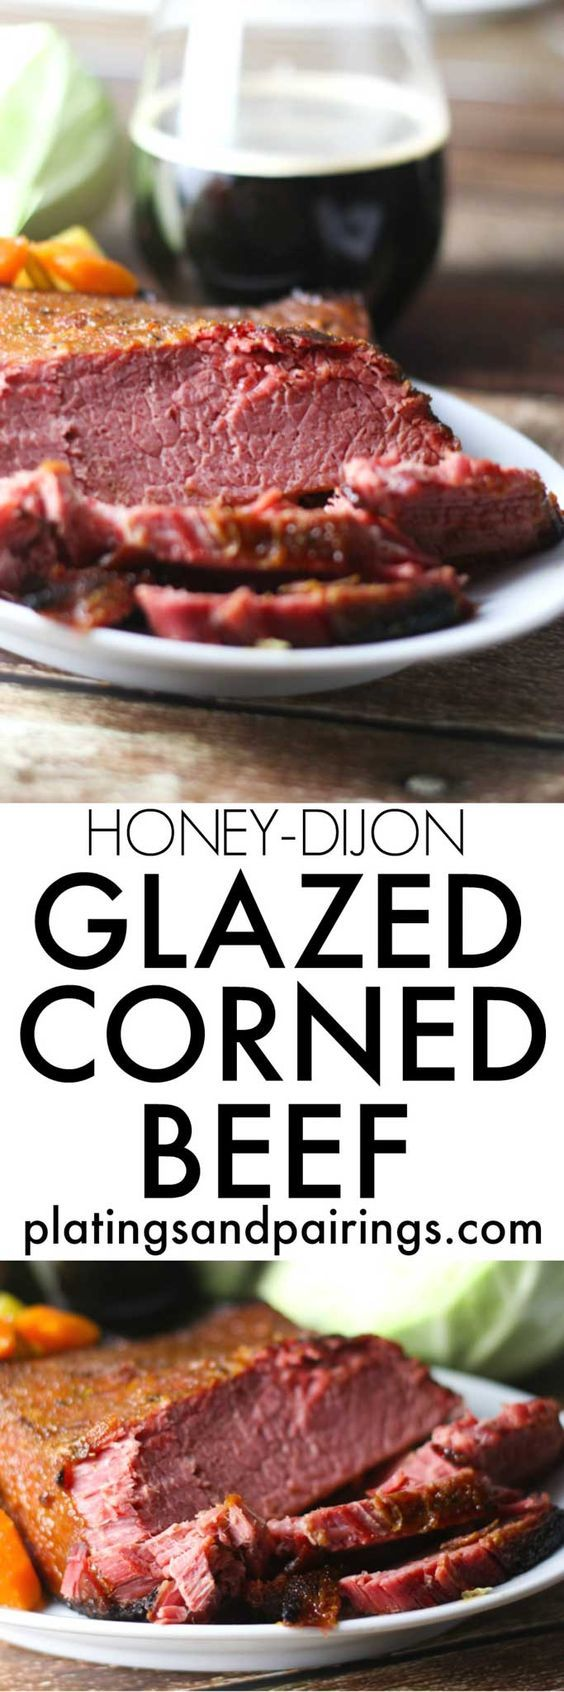 Glazed Corned Beef & Cabbage | Recipe | Glaze, Beef and ...